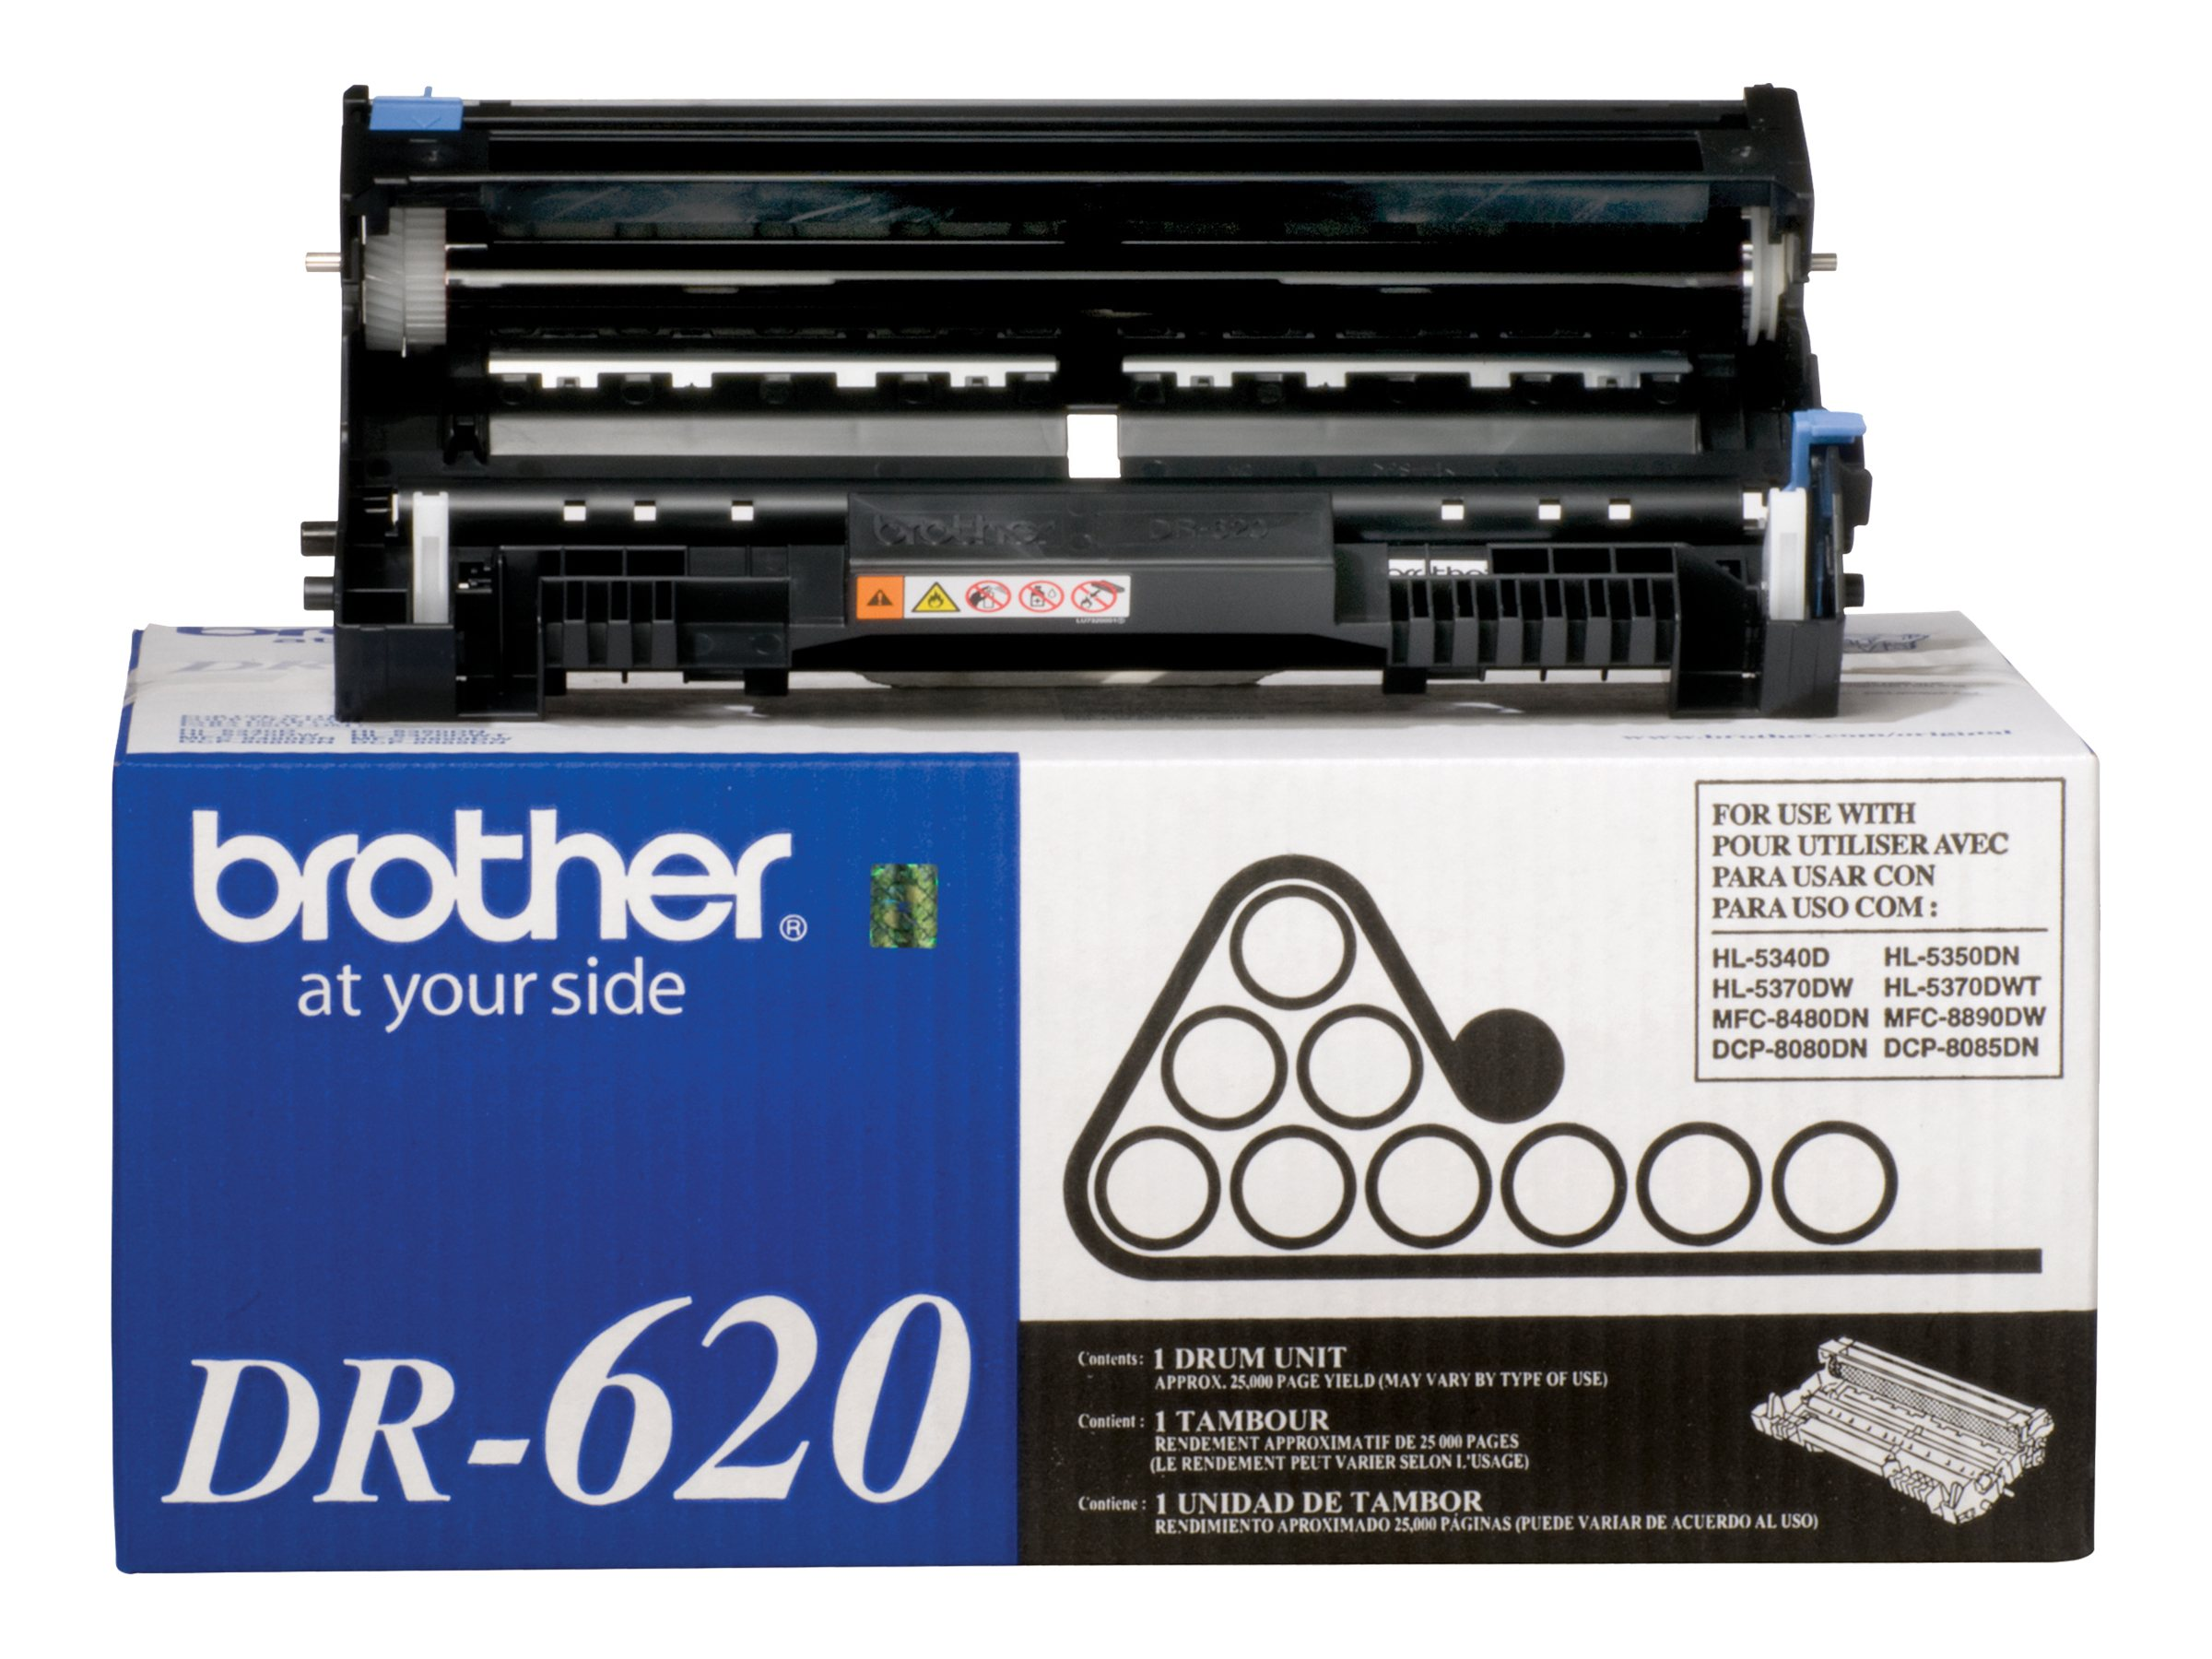 Brother DR620 Drum Unit for DCP-8080DN, DCP-8085DN, HL-5340D, HL-5370DW, HL-5370DWT, MFC-8480DN & MFC-8890DW